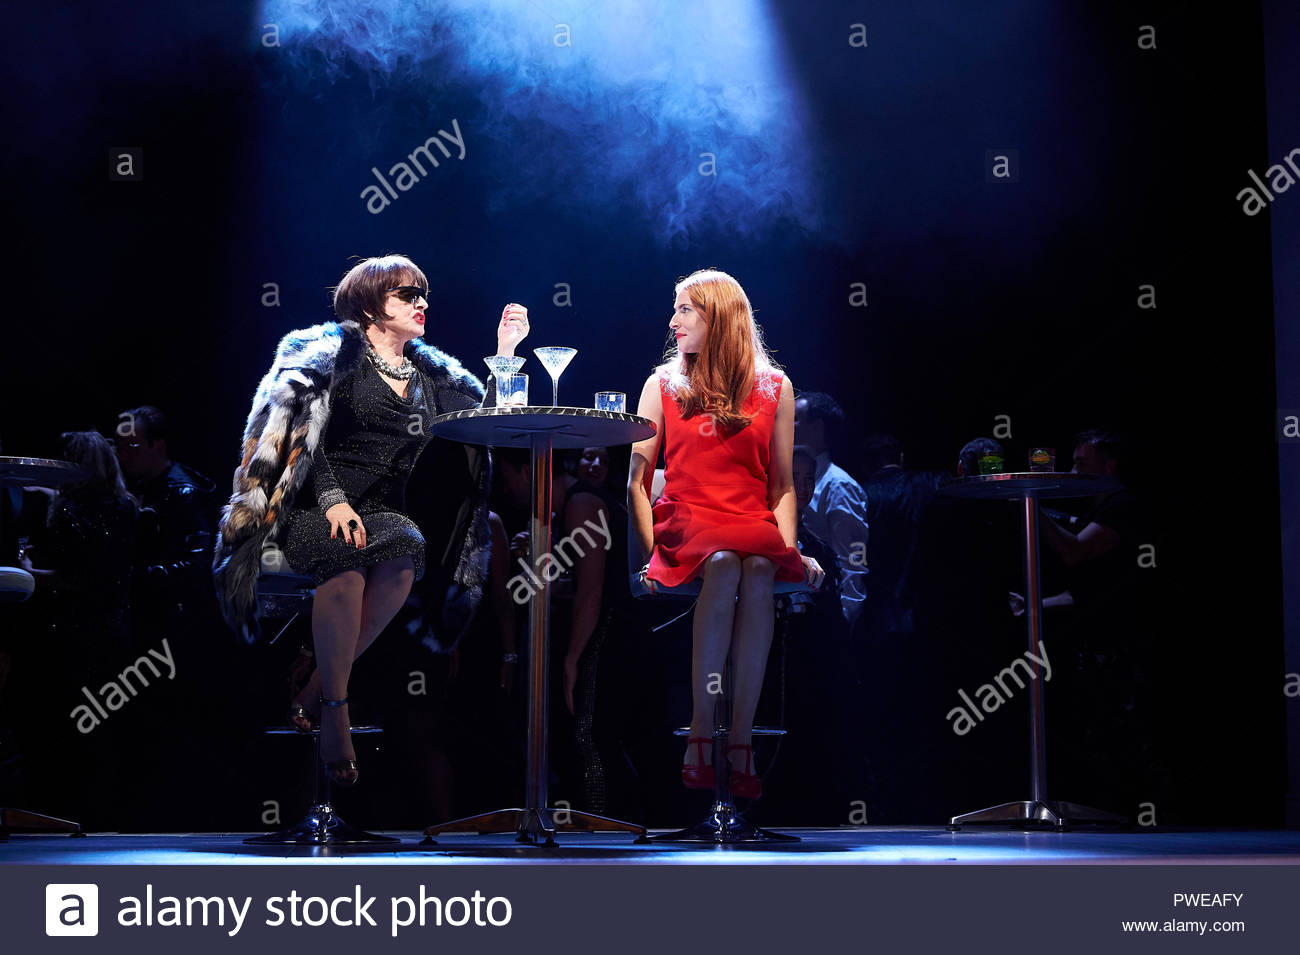 London, UK, 16th Oct 2018. Company, a Musical Comedy, Music and Lyrics by Stephen Sondheim, book by George Furth. Directed by Marianne Elliott. With Patti Lupone as Joanne, Rosalie Craig as Bobbie. Opens at The Gielgud Theatre on 17/10/18. CREDIT Geraint Lewis EDITORIAL USE ONLY Credit: Geraint Lewis/Alamy Live News - Stock Image